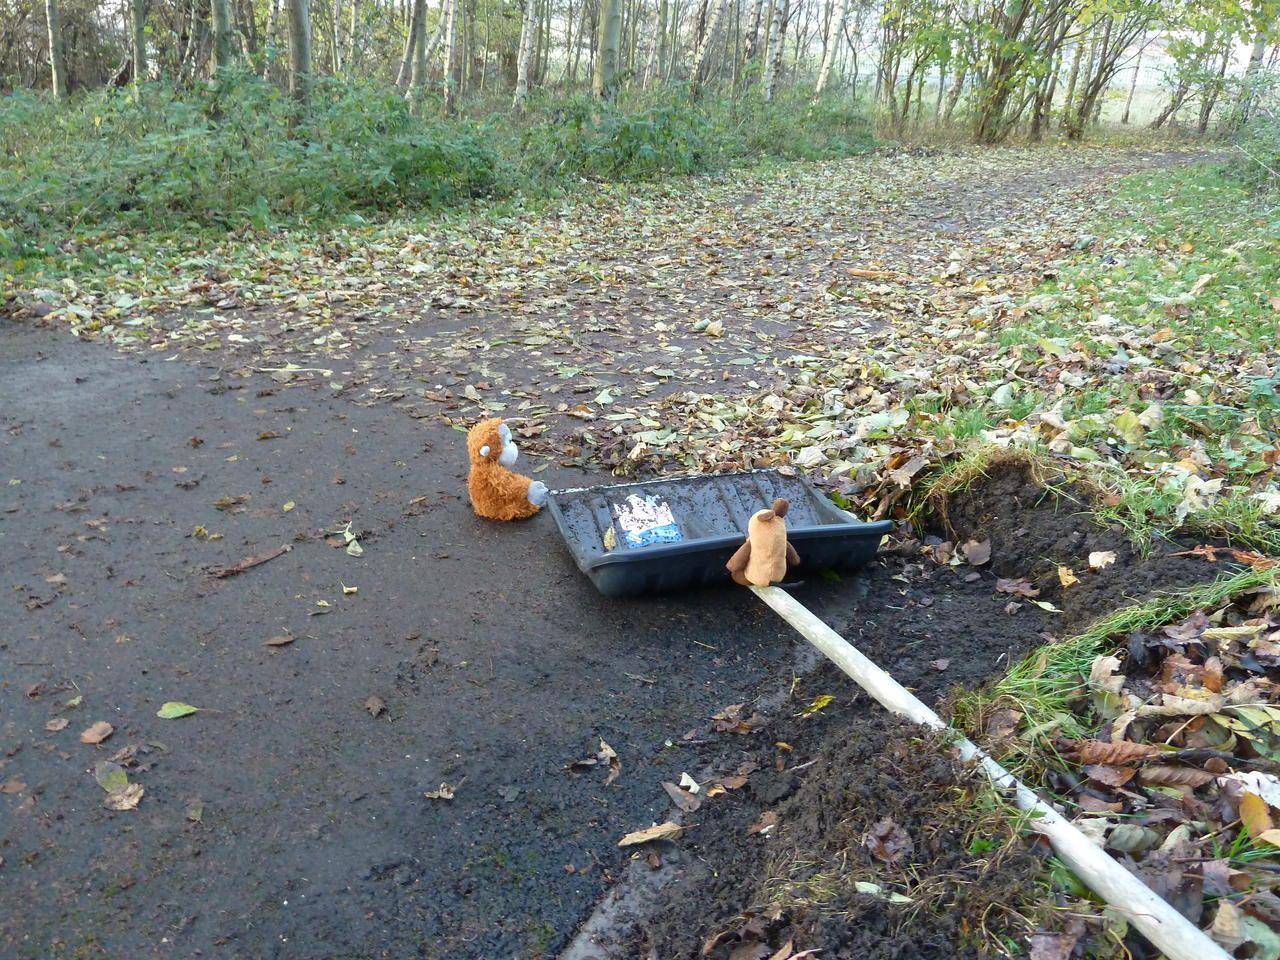 Pongo and Mouse sitting on the path next to the shovel, which is partly cleaned from leaves